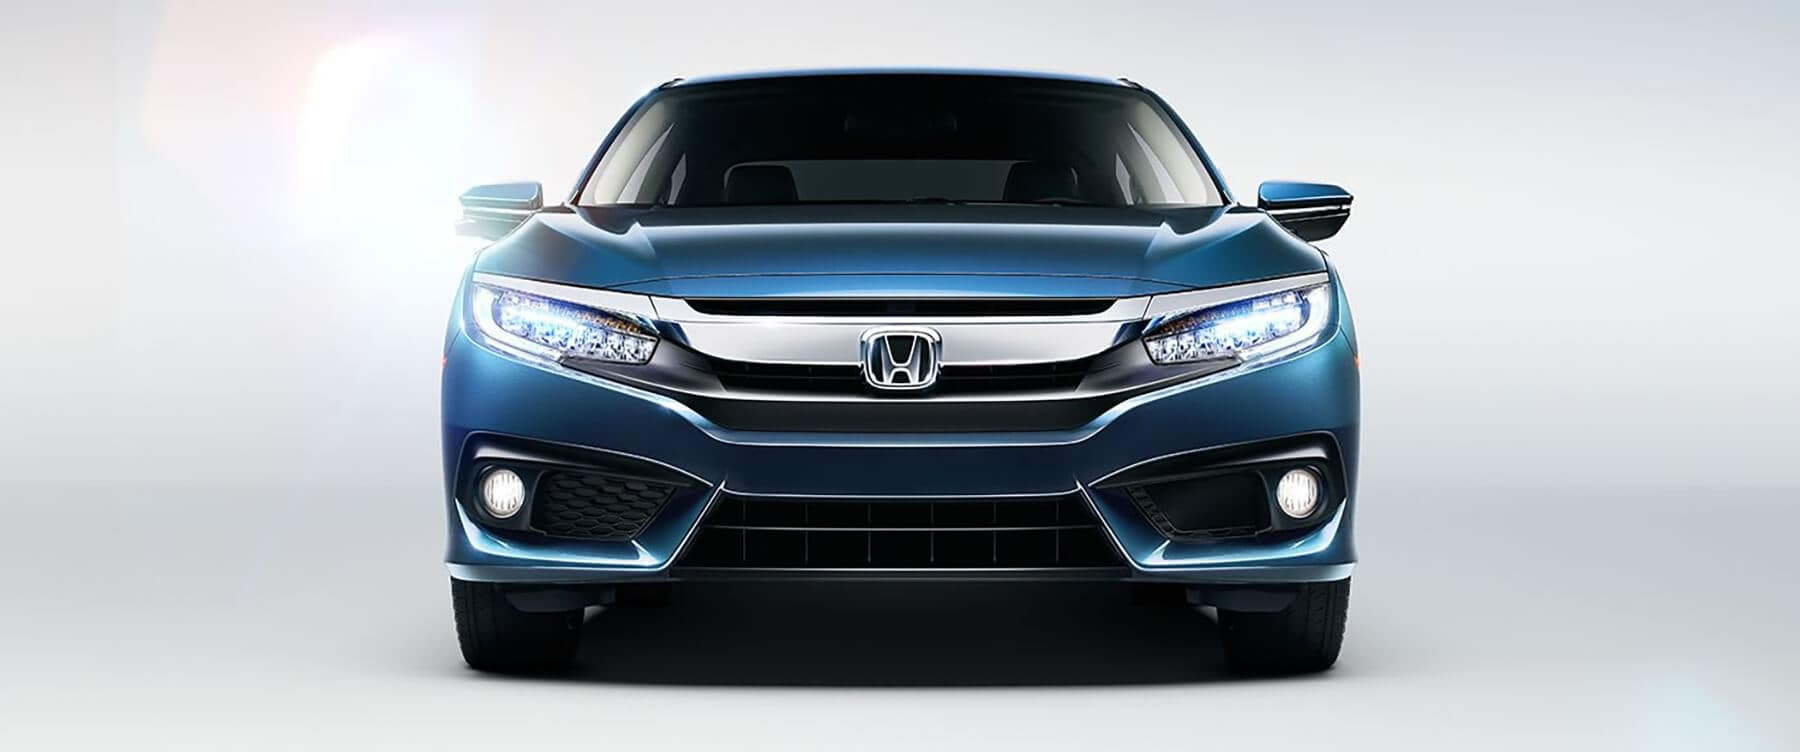 2018 Honda Civic Grill